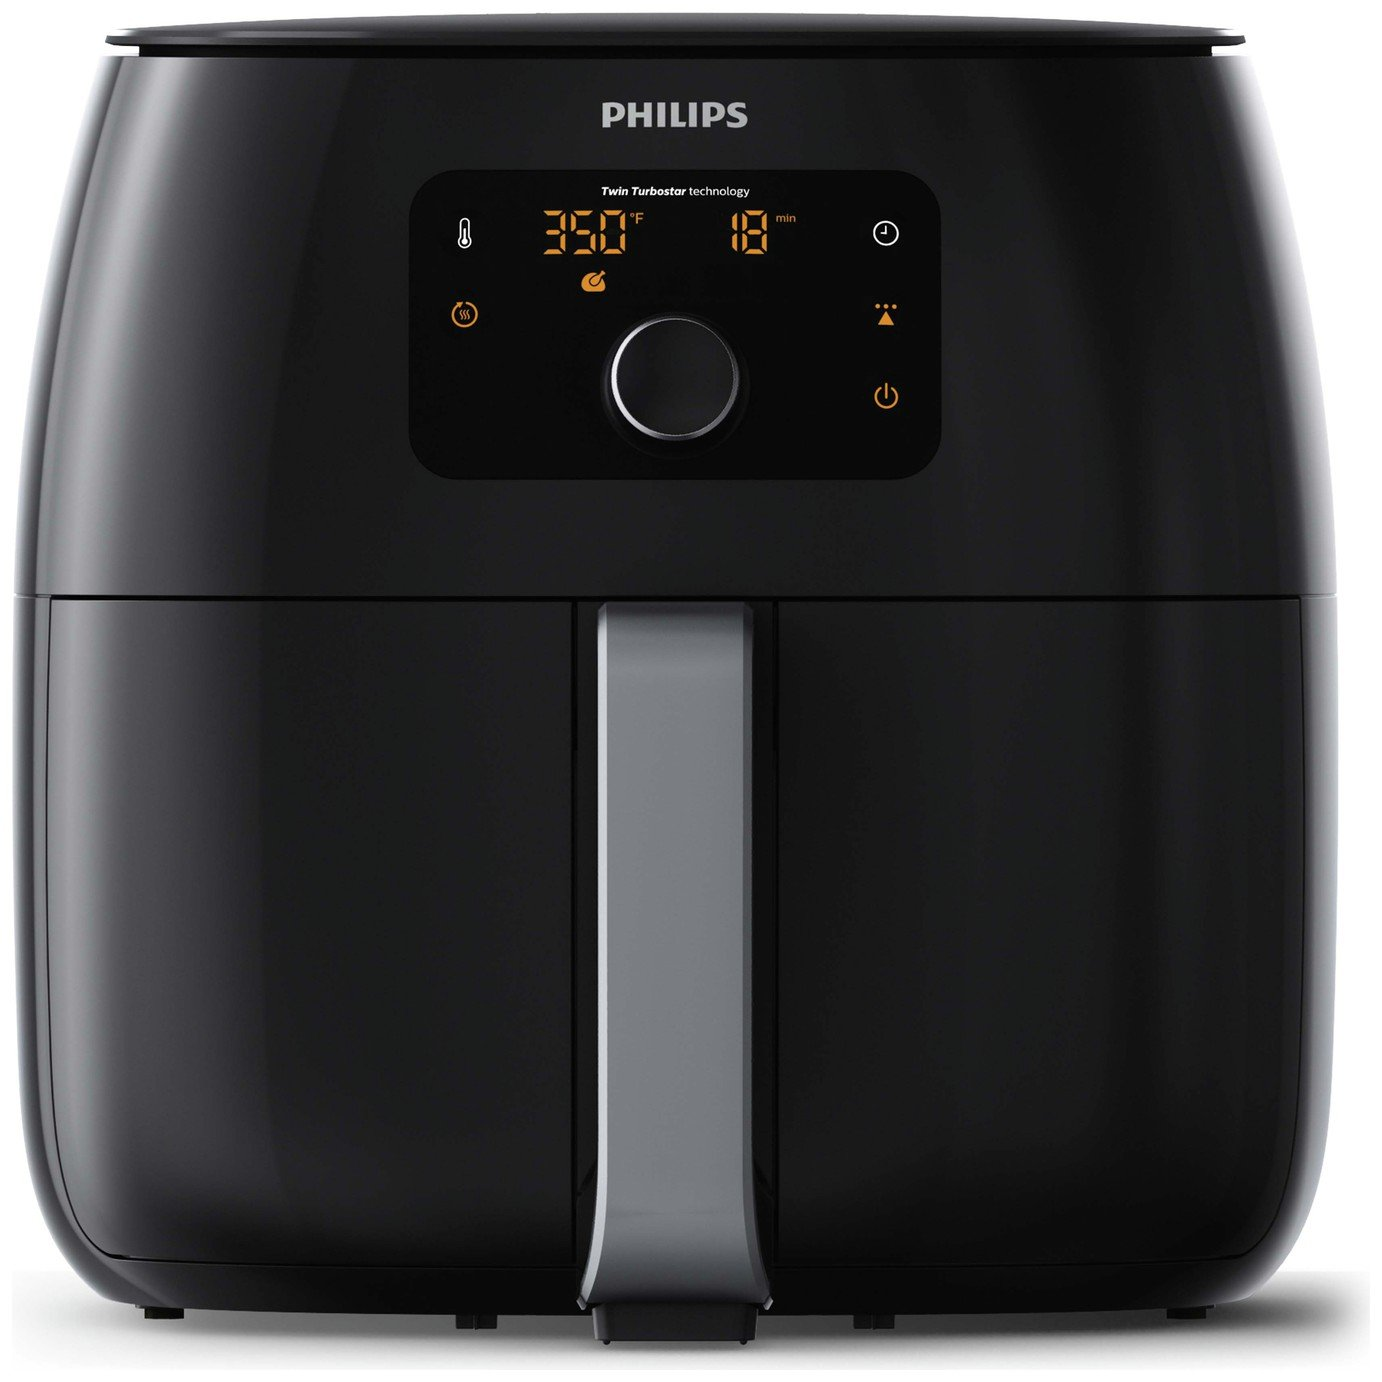 Fryers Page 1 Argos Price Tracker Russell Hobbs Purifry Health Fryer Philips Hd9650 99 Airfryer